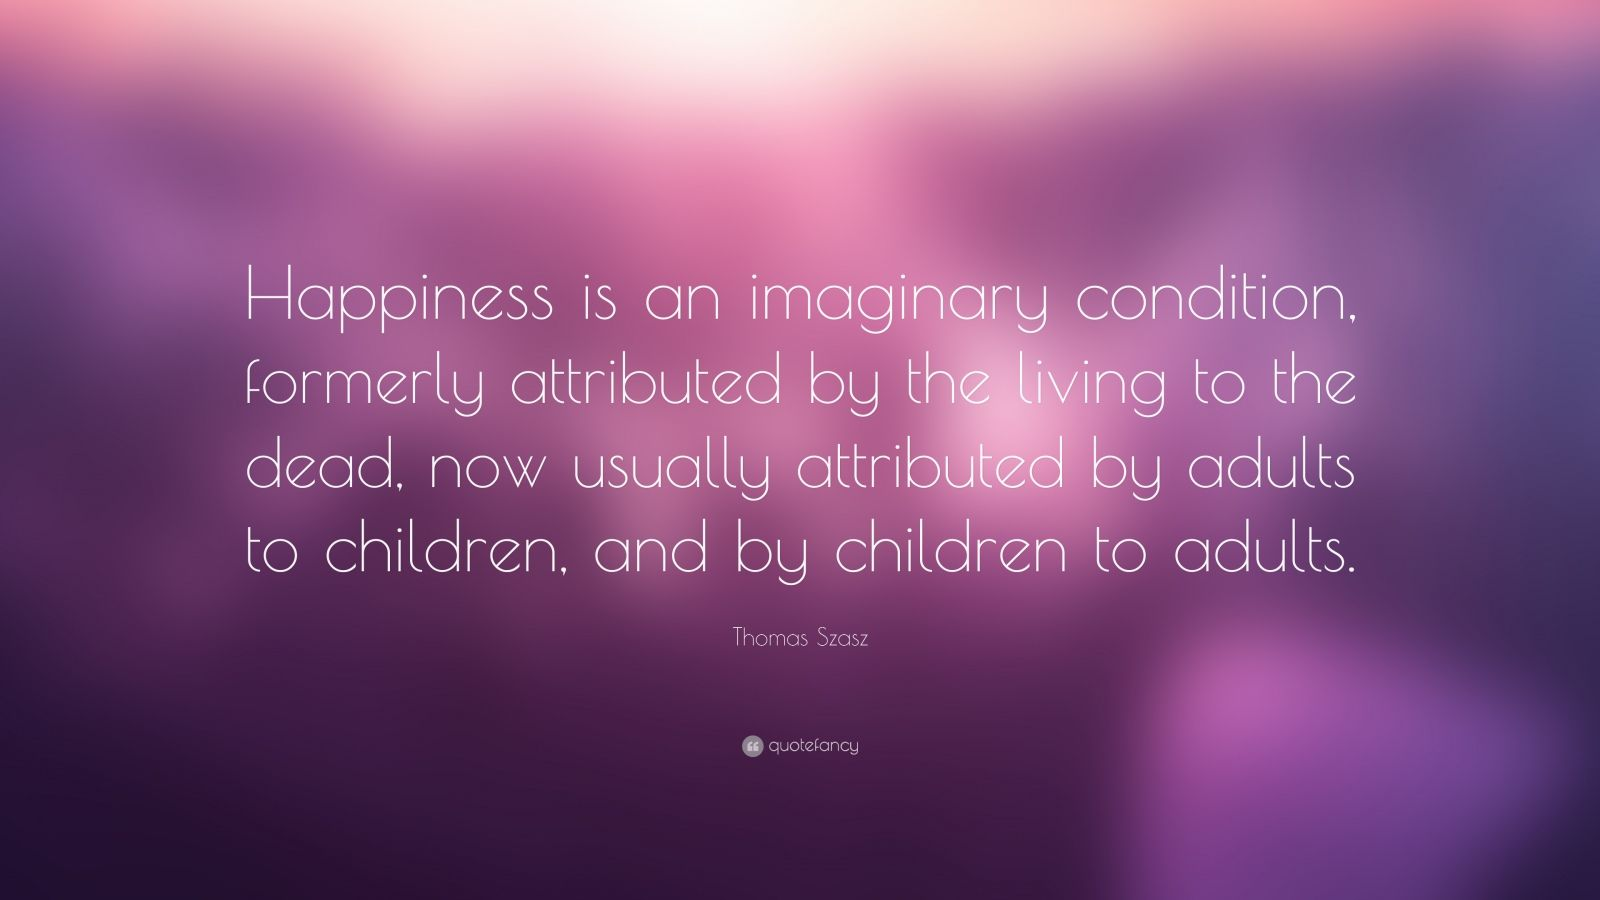 Happiness is an imaginary condition